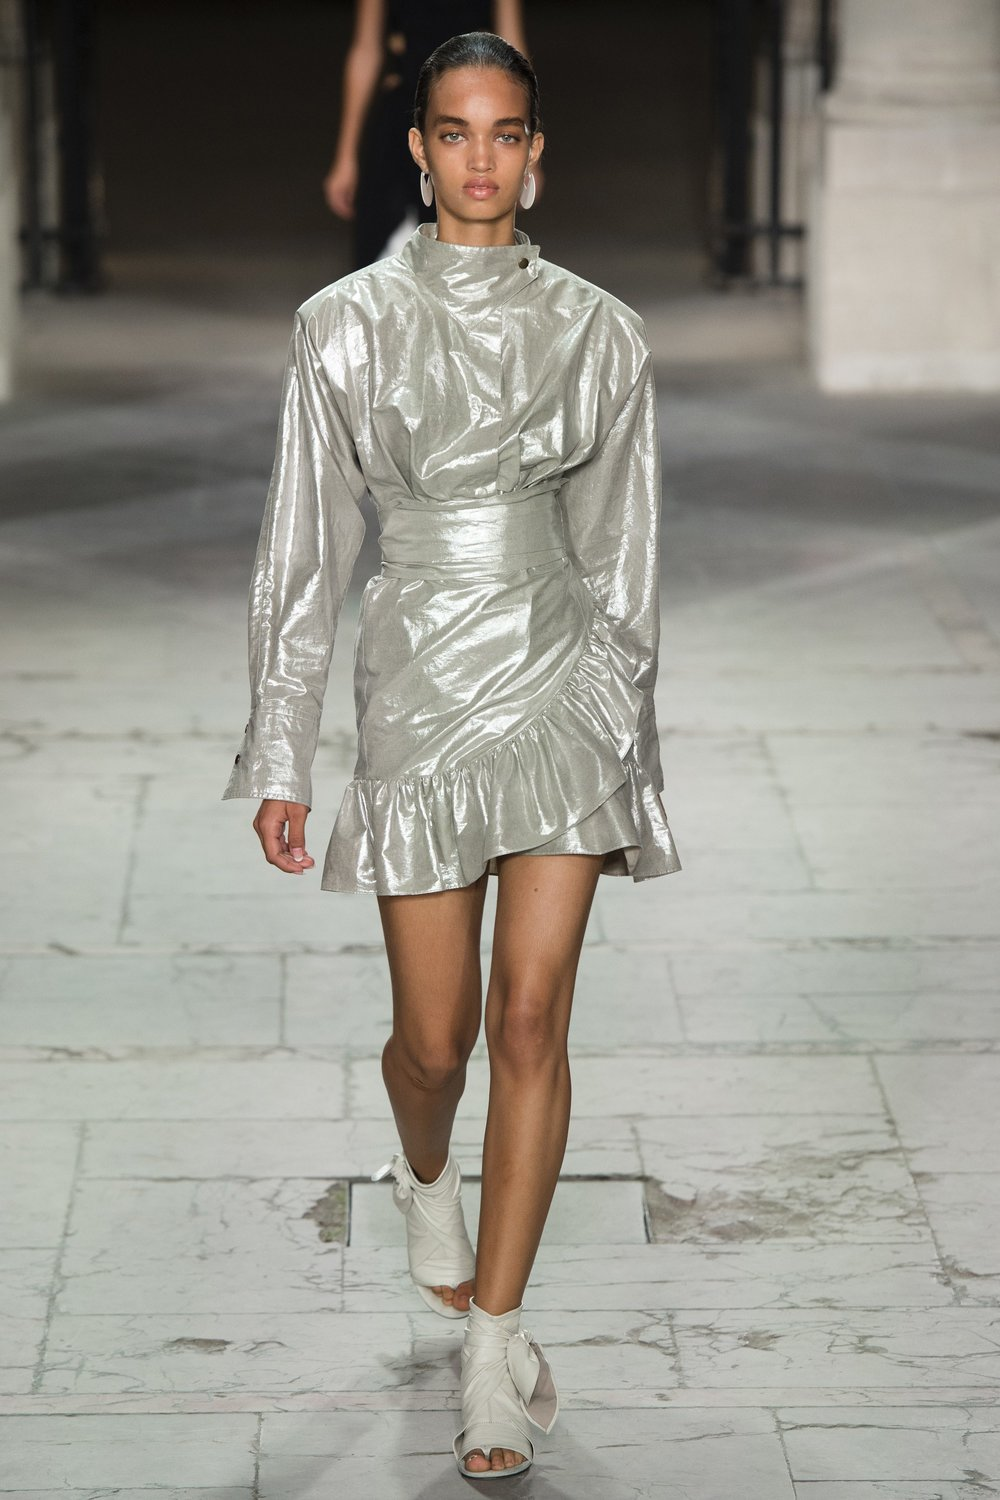 Isabel Marant, photo from Vogue Runway